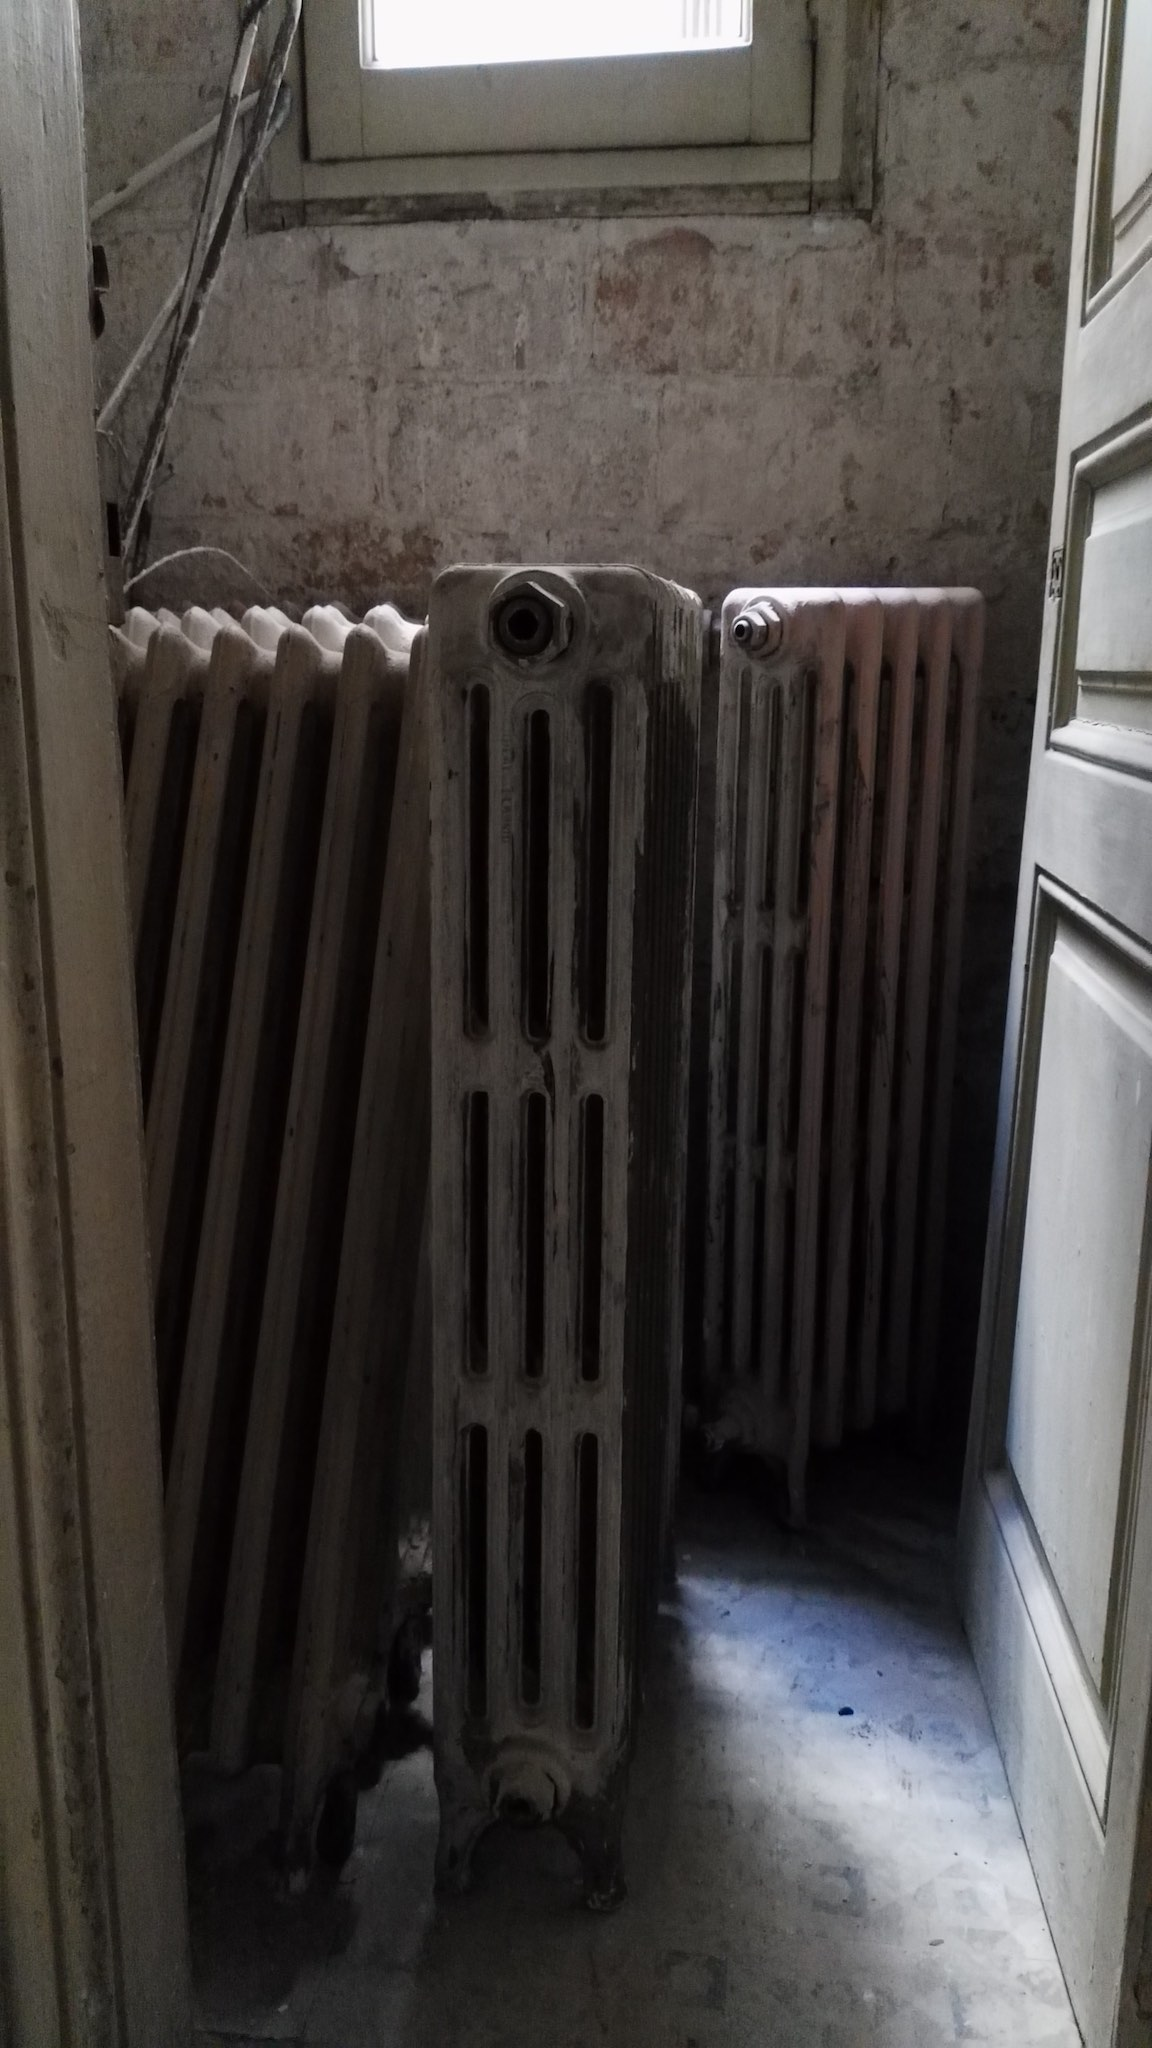 renovating a property in barcelona spain radiators heating